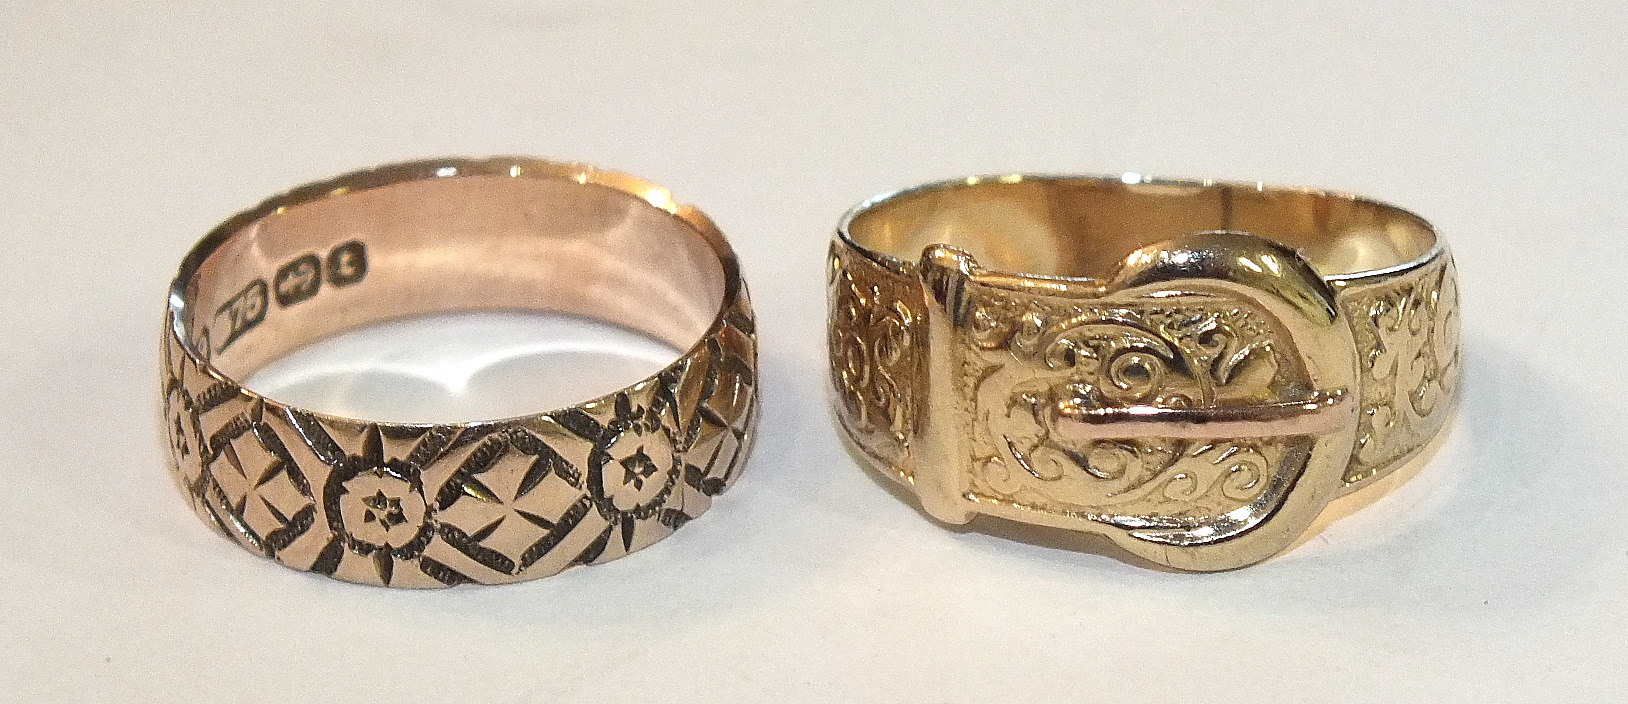 Lot 204 - A 9ct gold buckle ring, size Q, 3.2g and a 9ct gold wedding band, size O, 3.2g, (2).